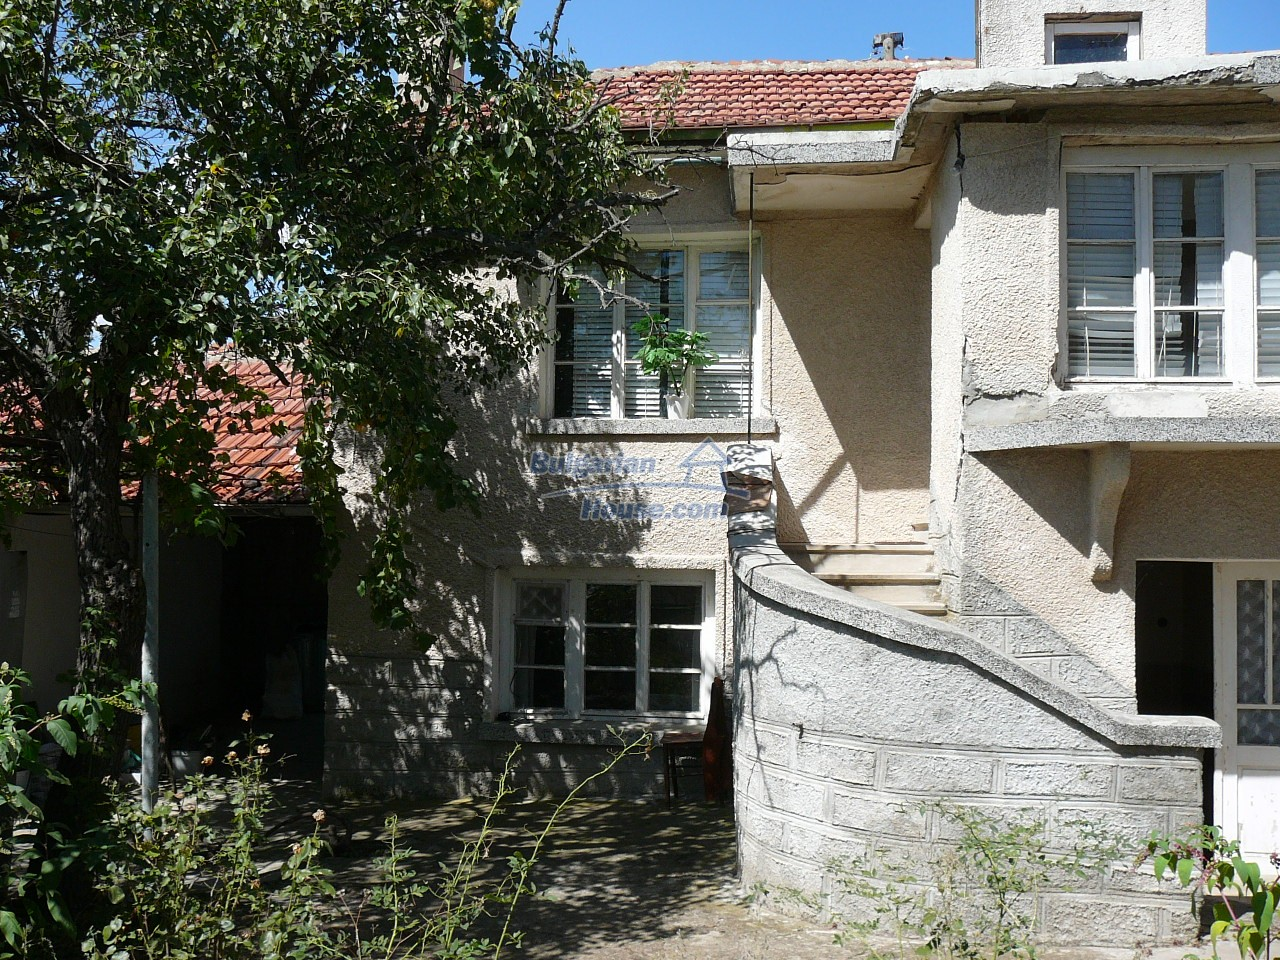 12527:2 - House  in good condition Stara Zagora region 55km to Plovdiv